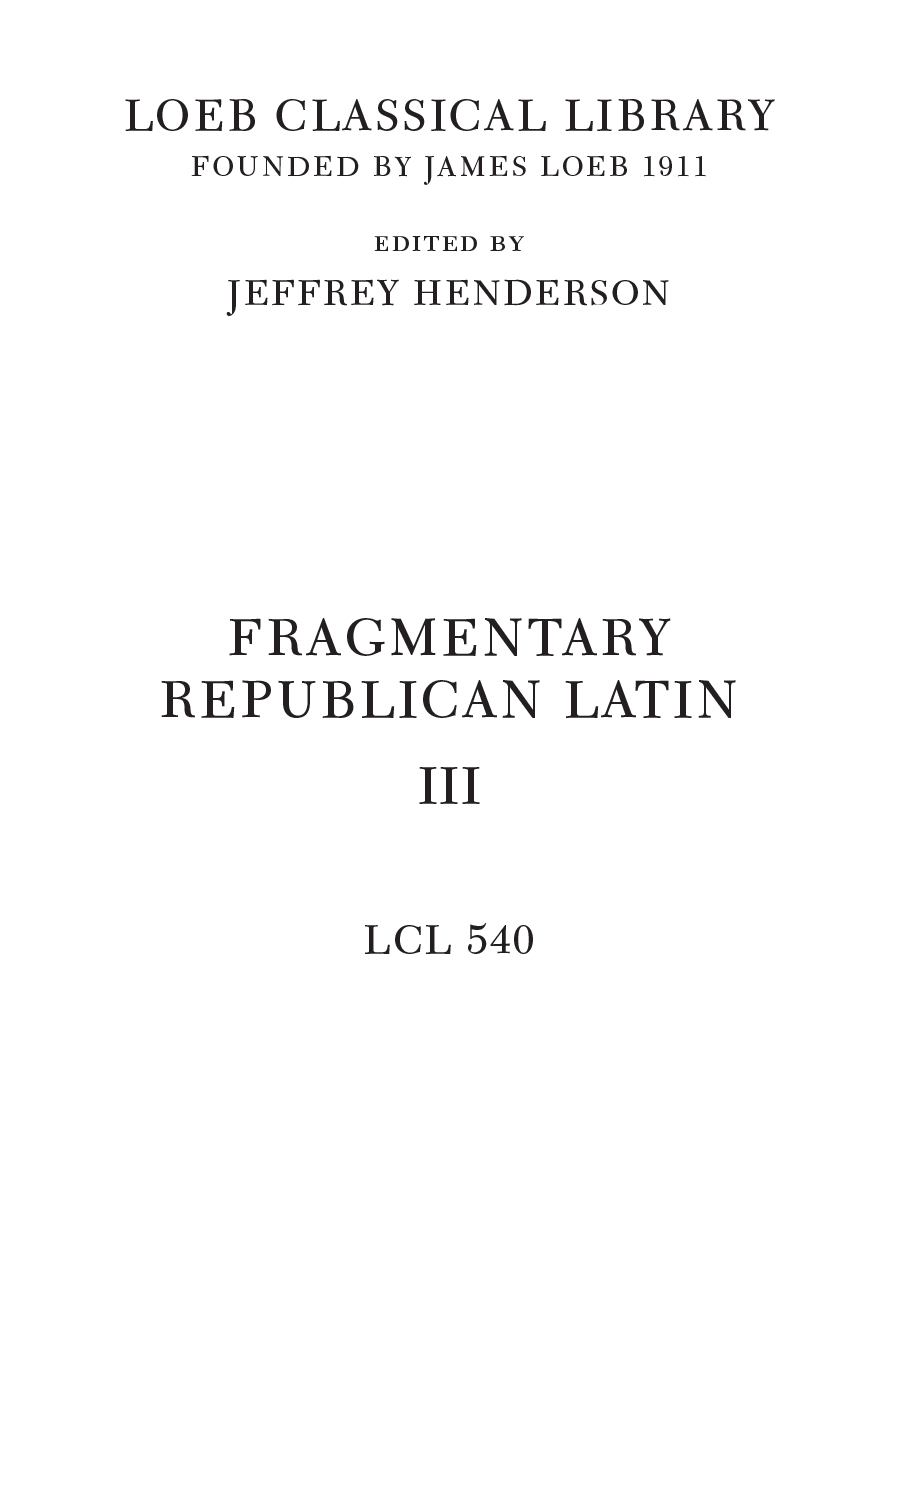 LOEB CLASSICAL LIBRARY FOUNDED BY JAMES LOEB 1911 edited by jeffrey henderson FRAGMENTARY REPUBLICAN LATIN III LCL 540